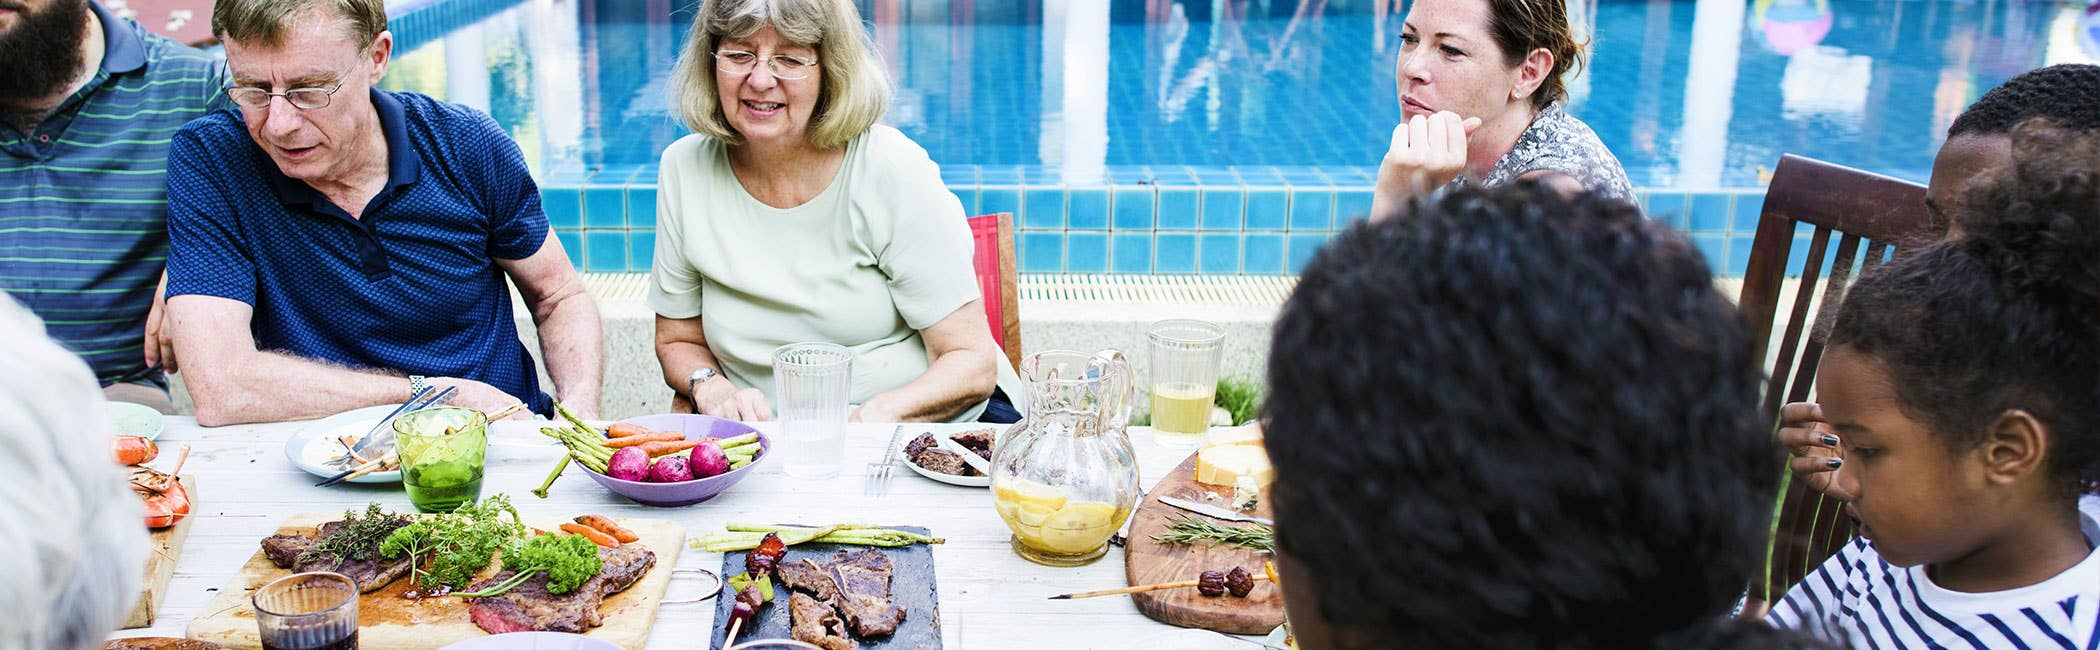 Changes in Eating Habits - Comparing Diets With Your Grandparents'